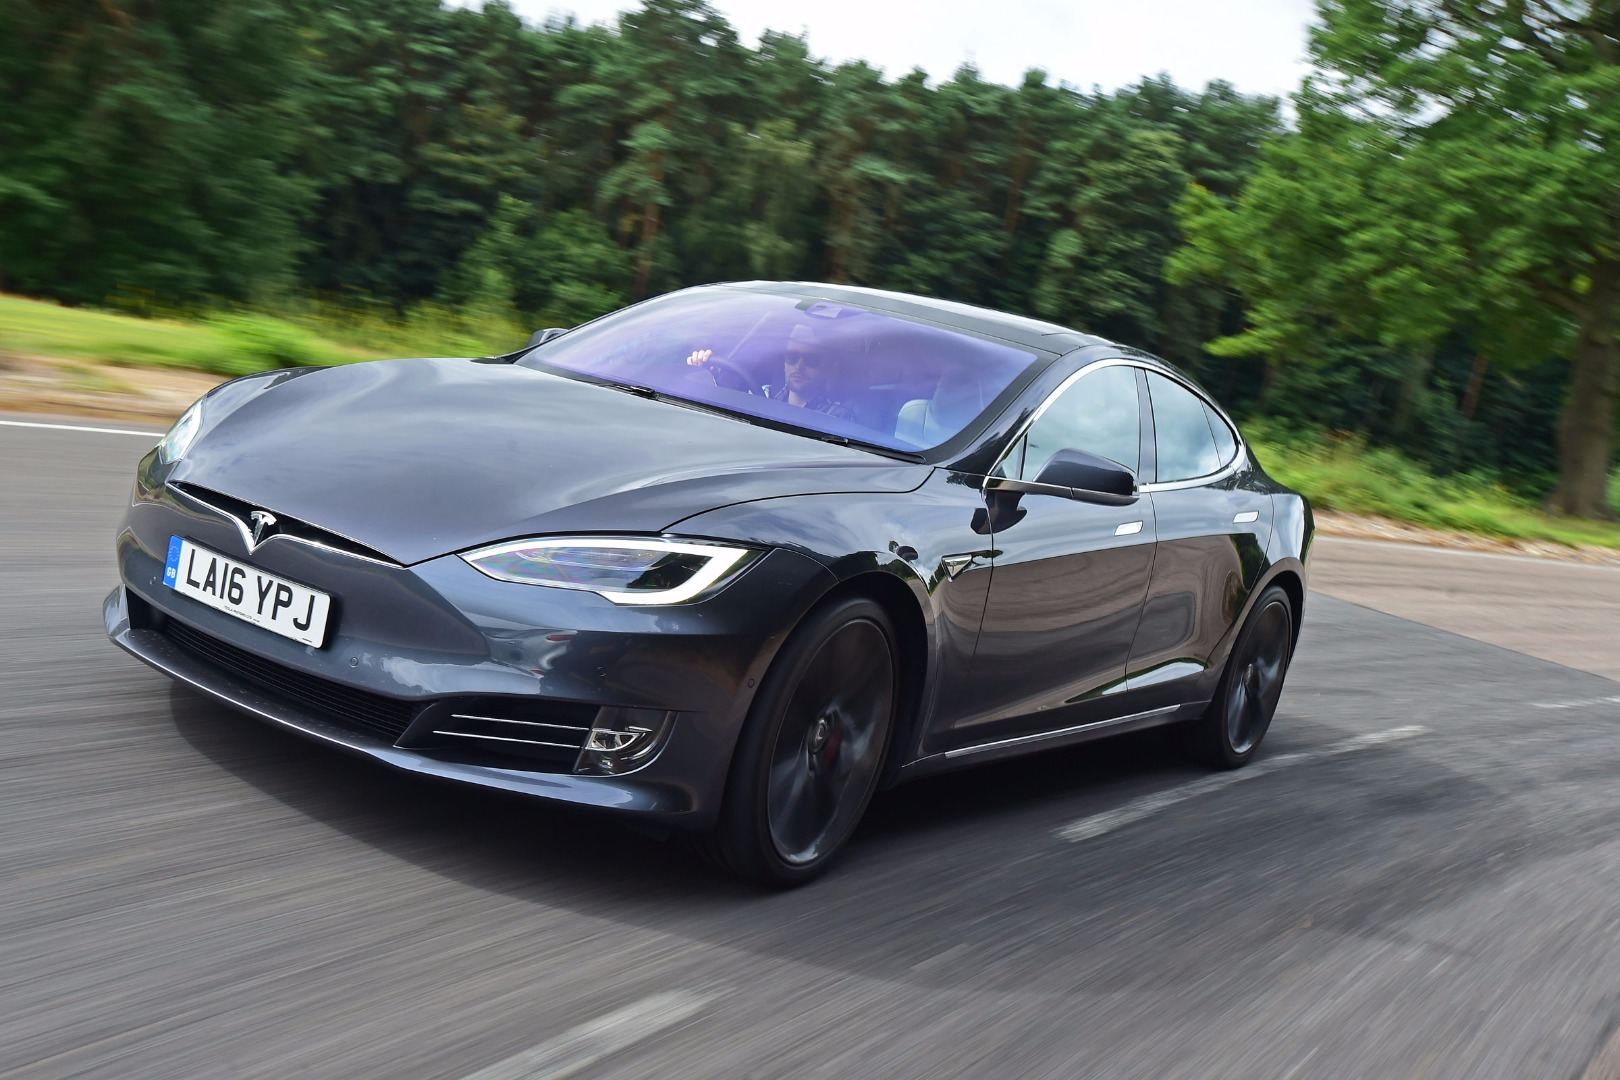 News - Tesla Model S Gets Glass Roof, P90D Axed